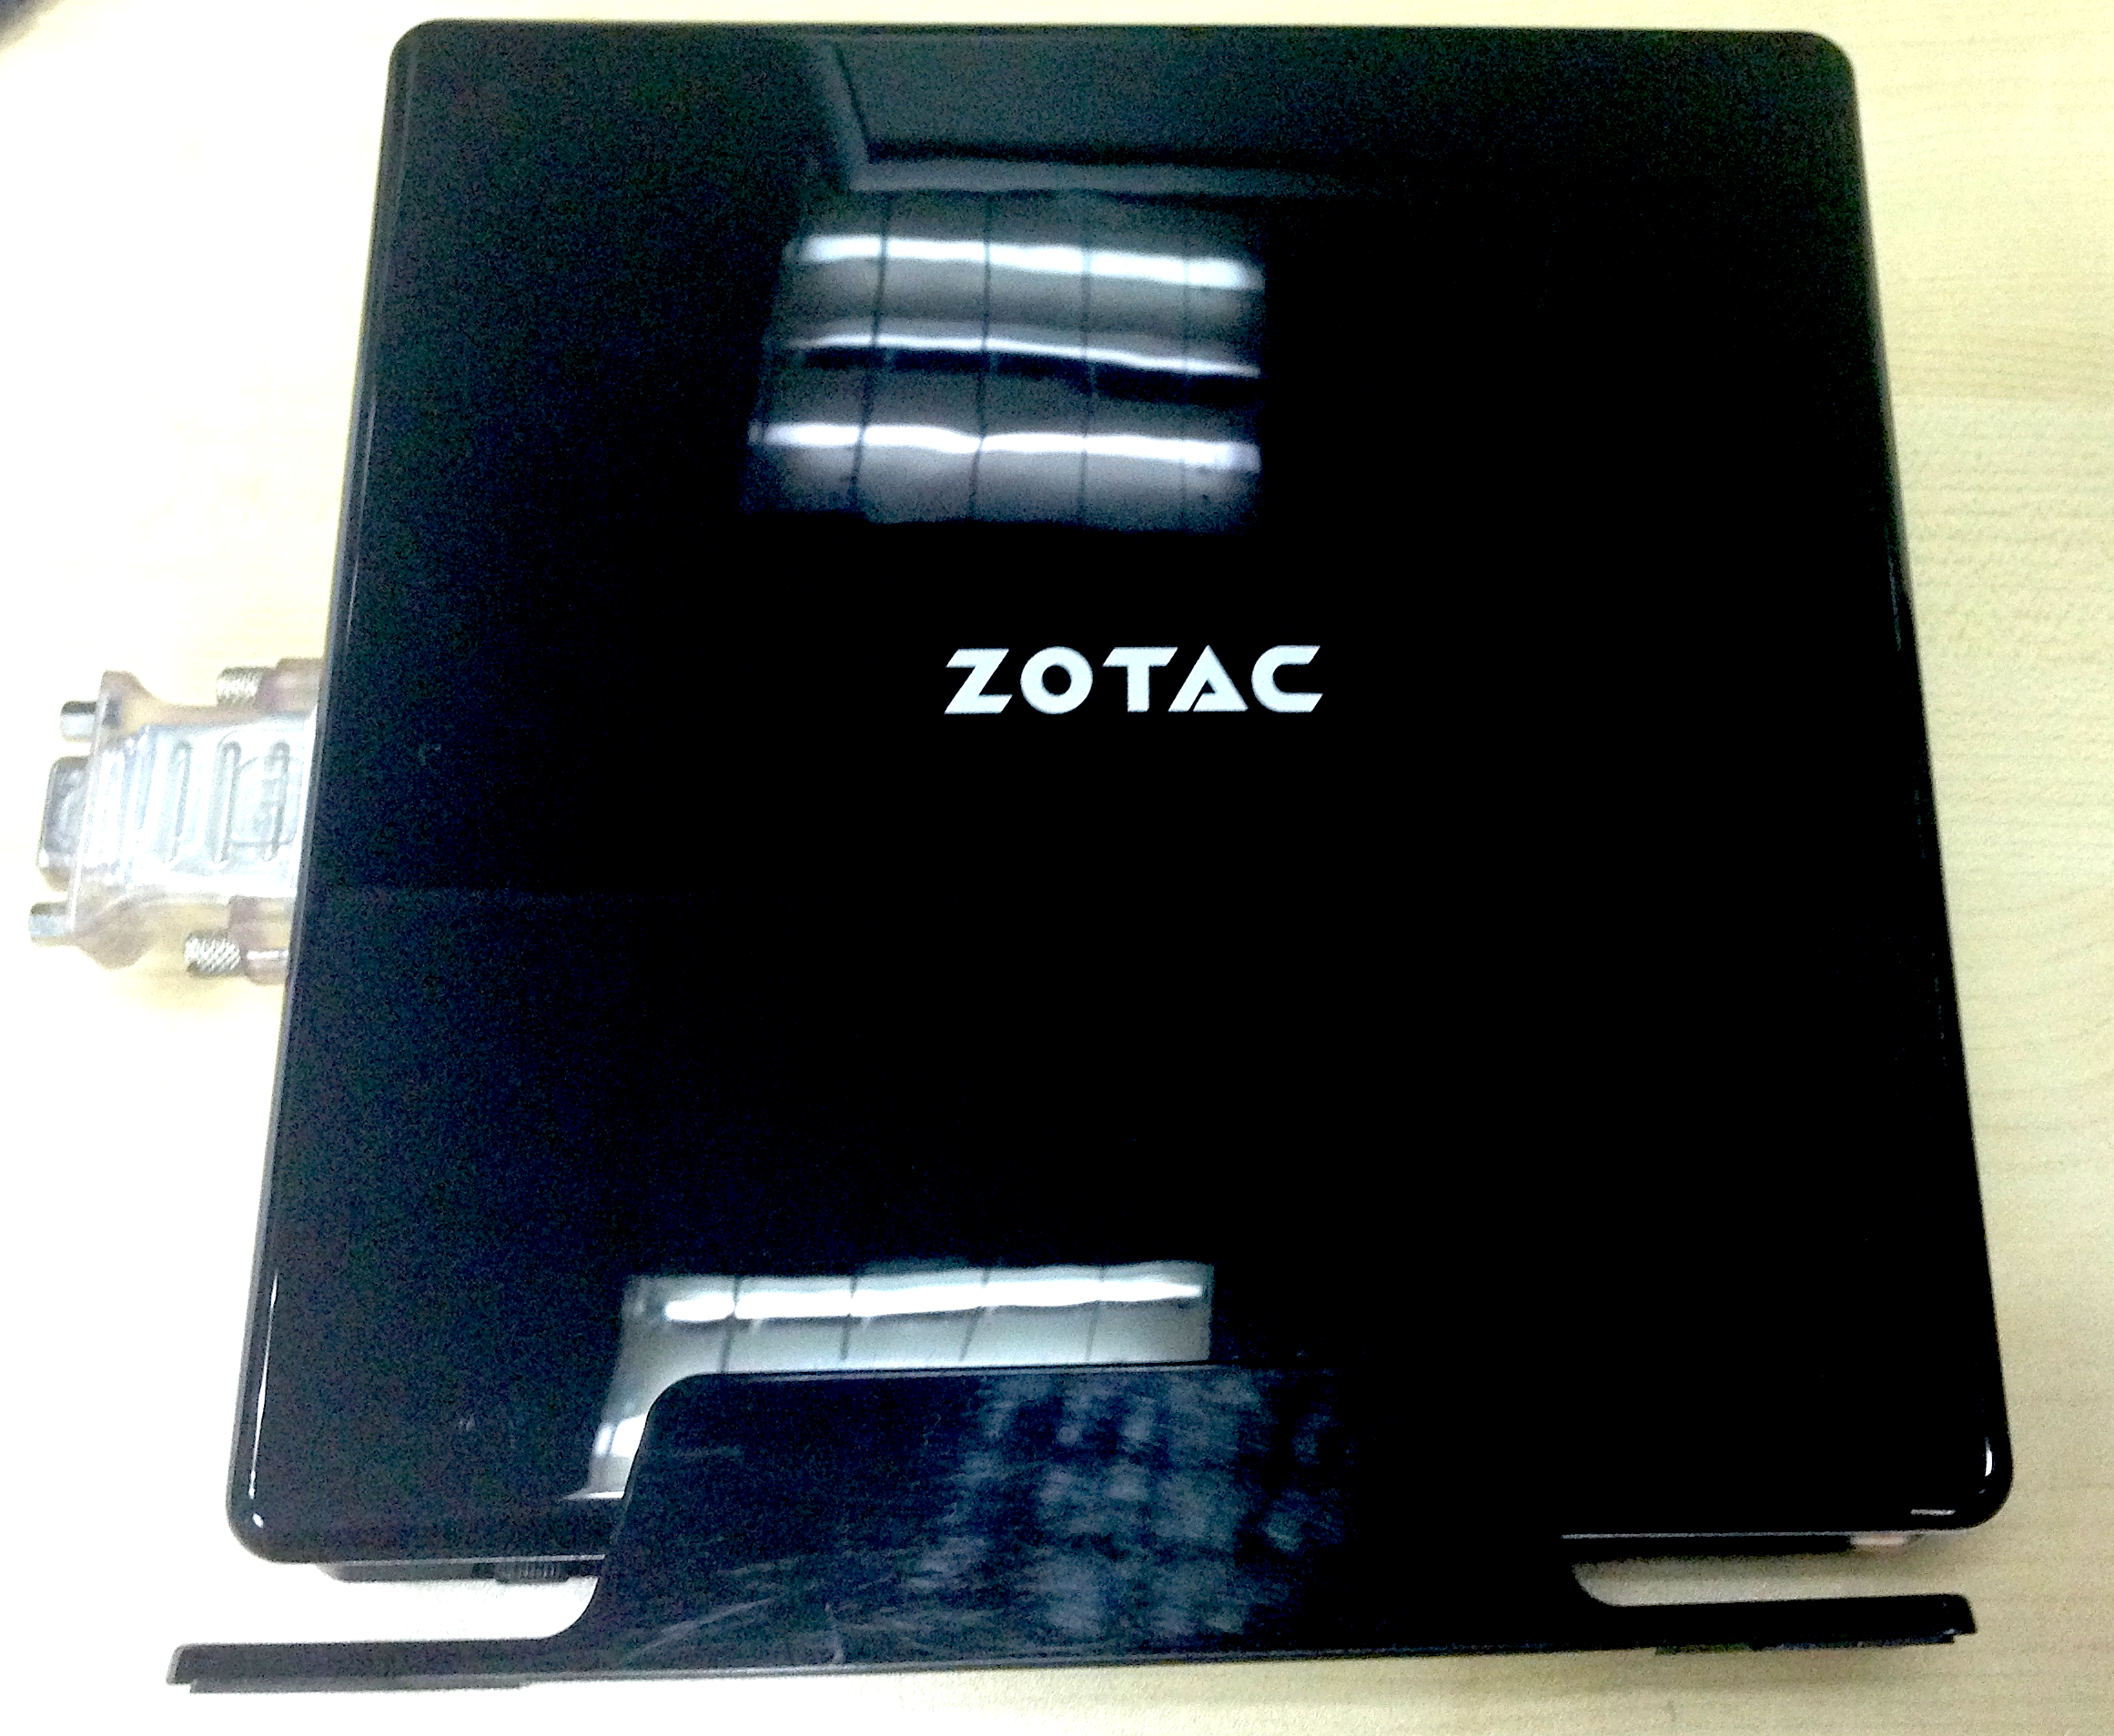 Zotac mini computer QTY : 18